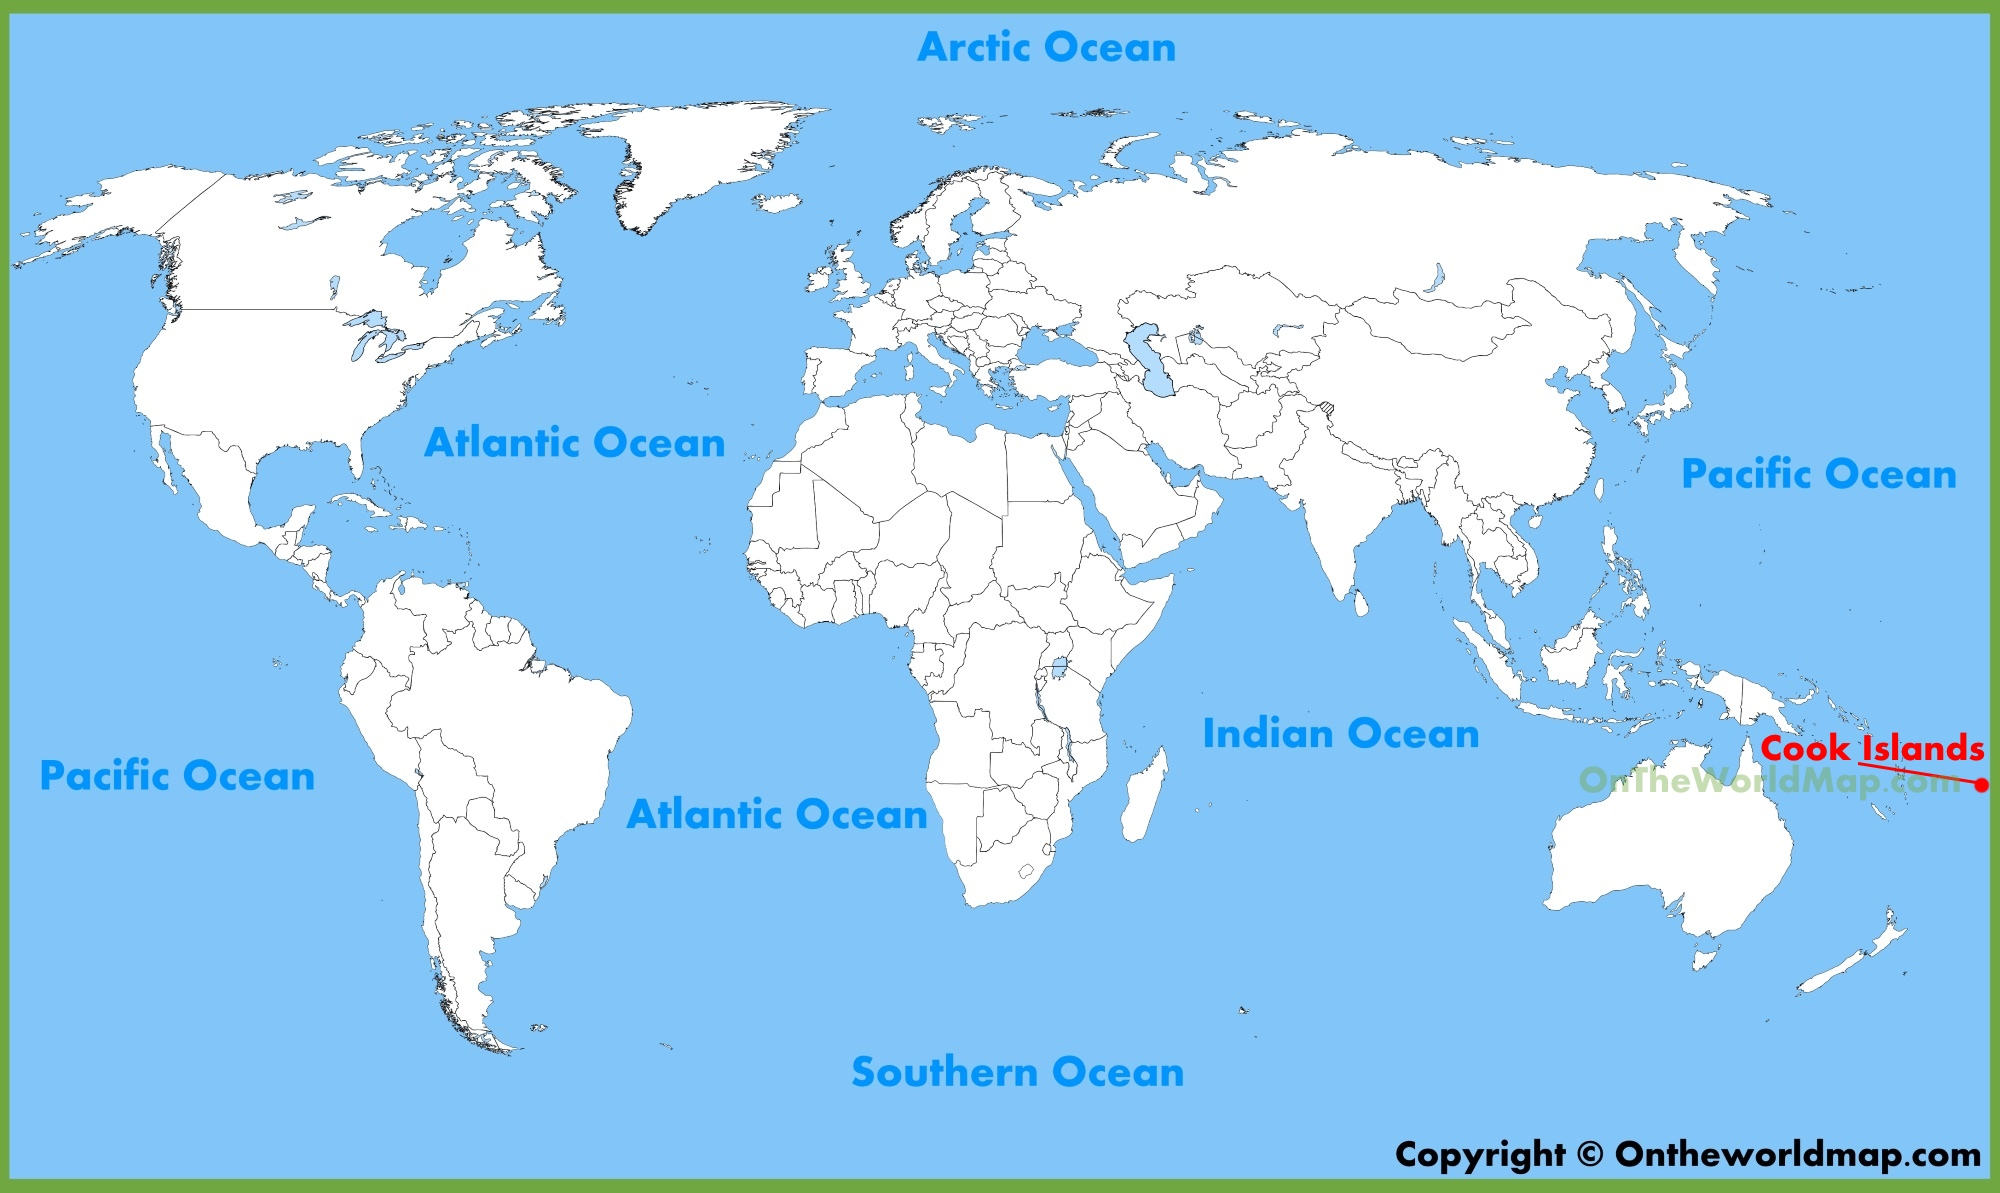 World Map Islands Cook Islands location on the World Map